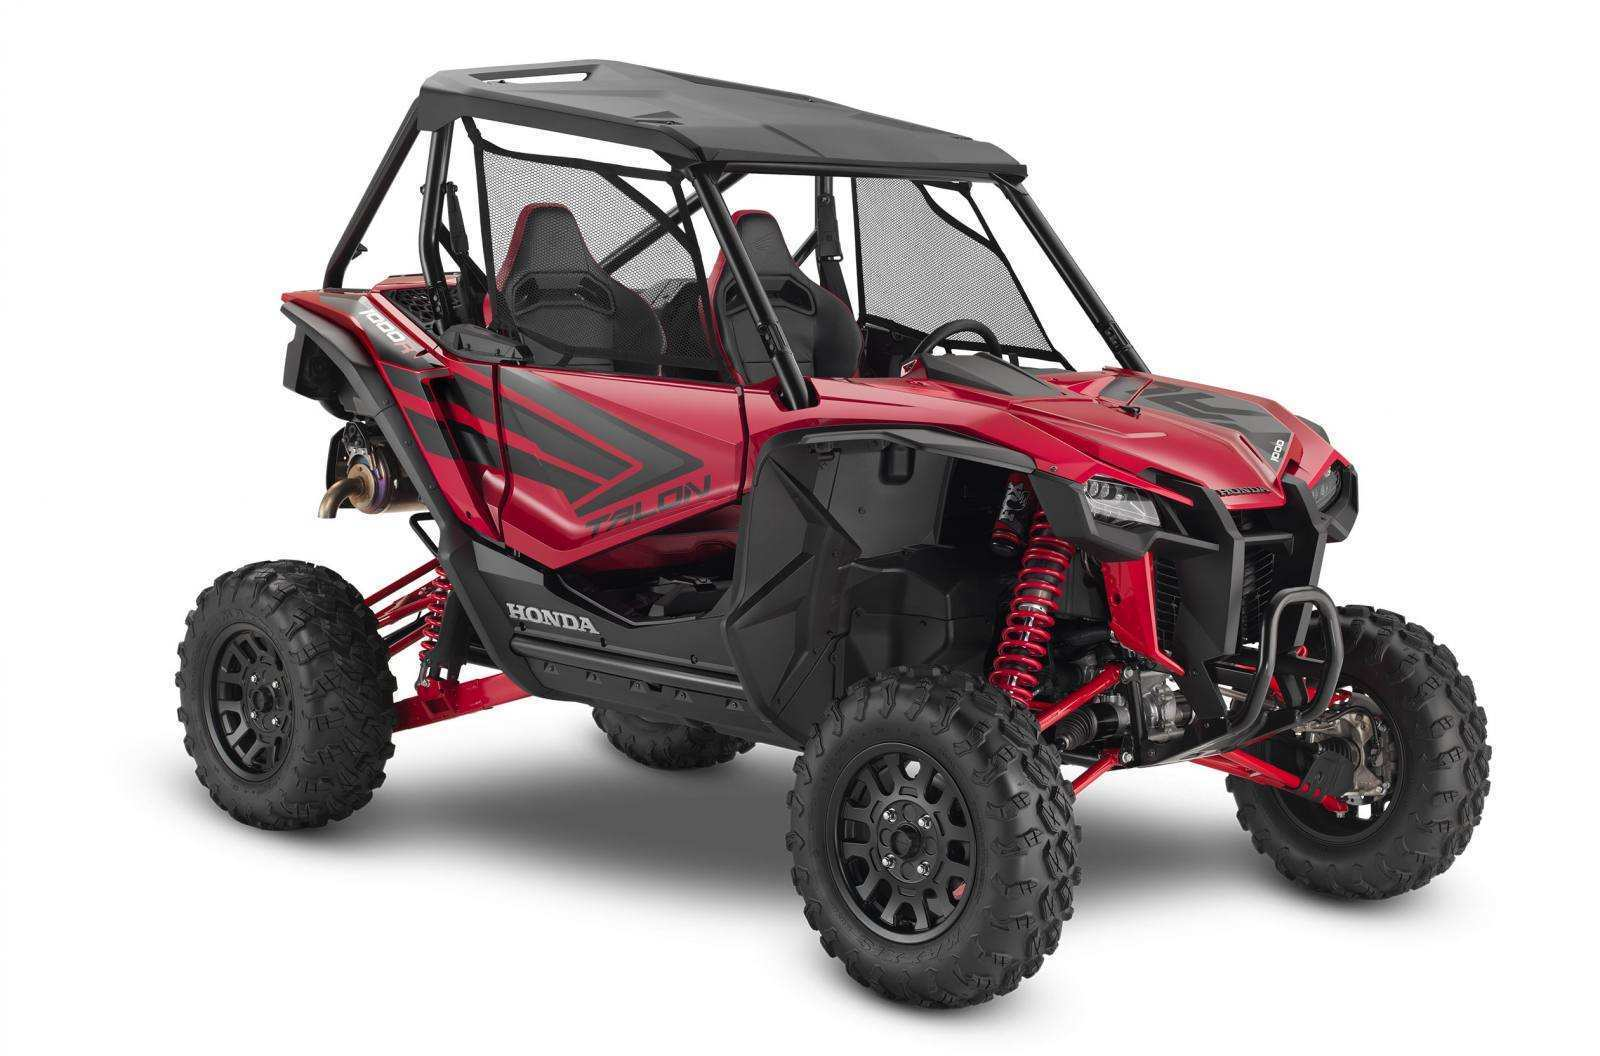 38 Gallery of 2019 Honda Talon Photos with 2019 Honda Talon